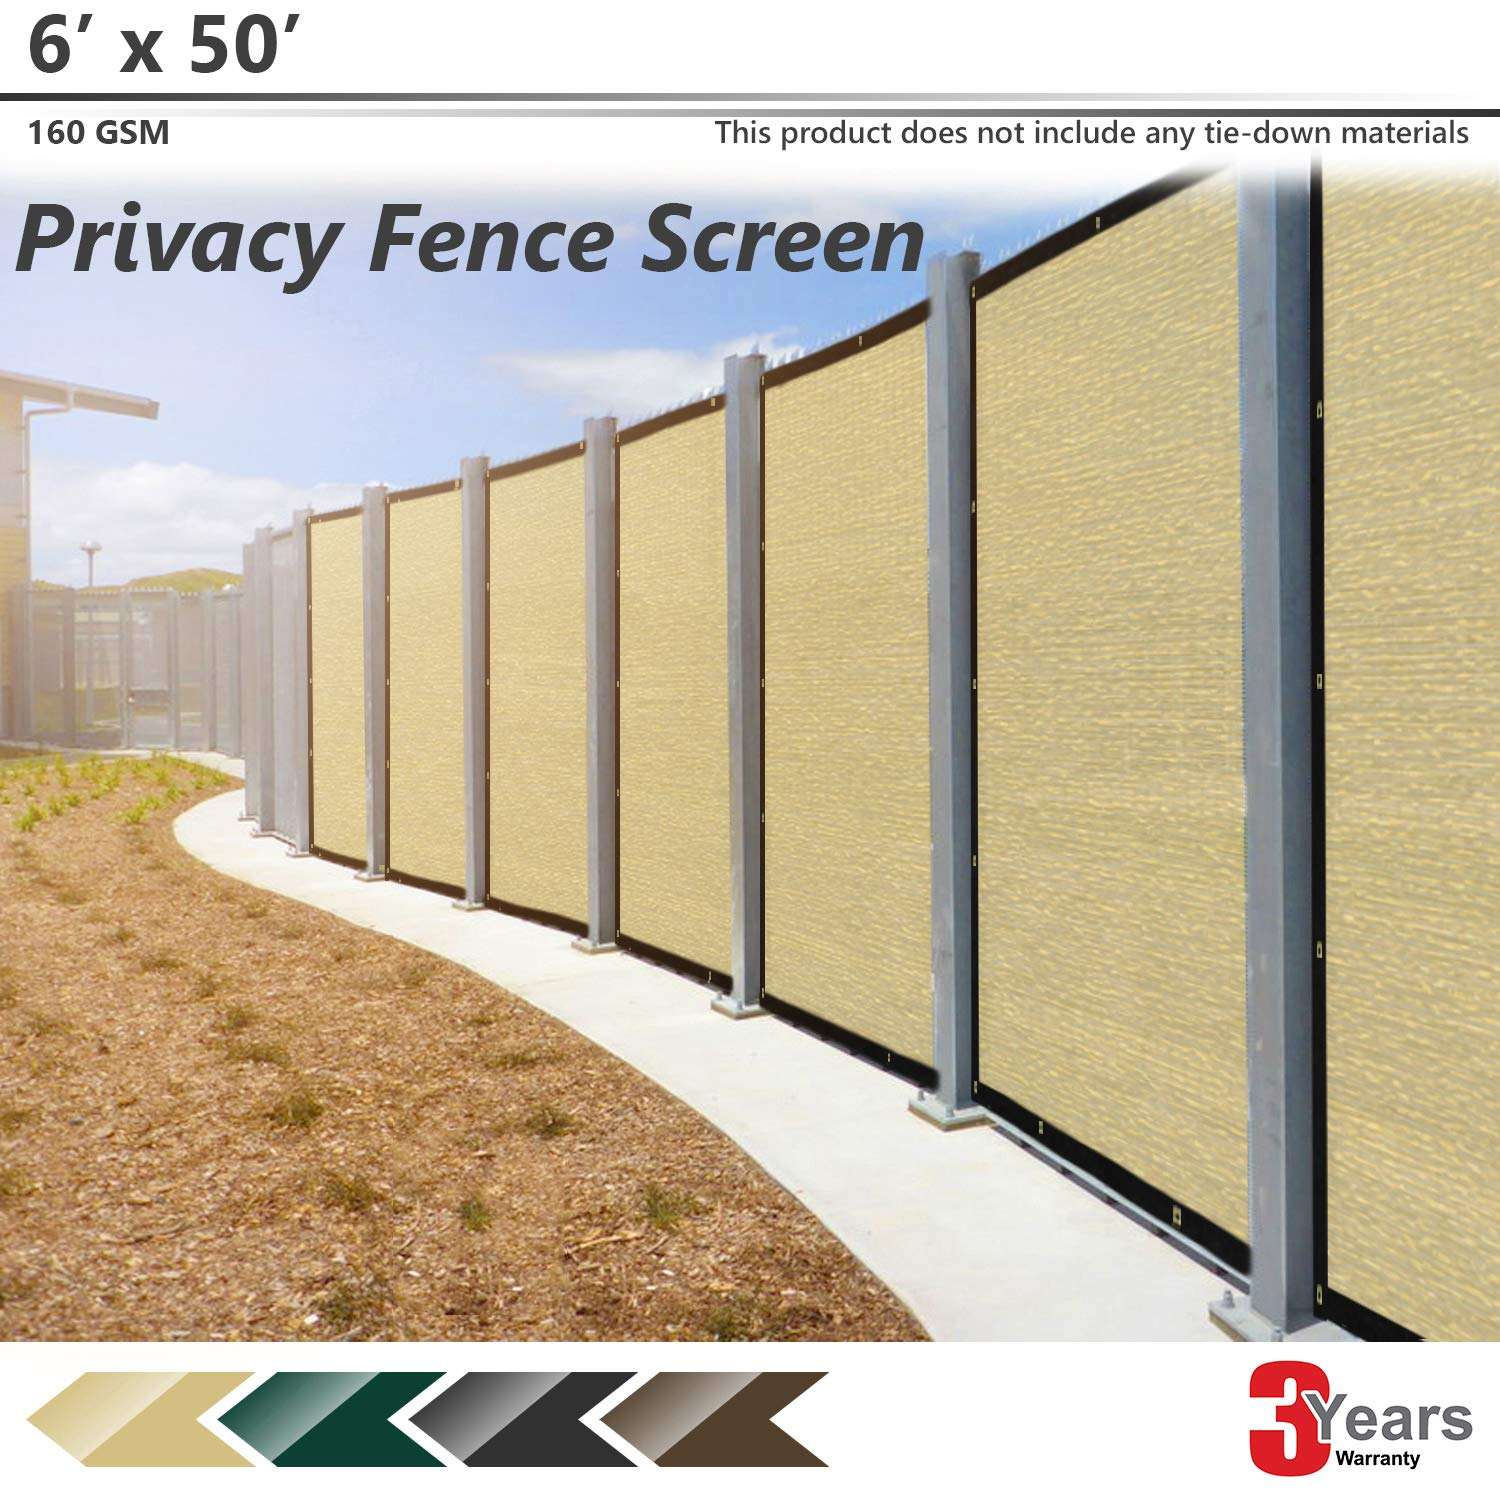 BOUYA Beige Privacy Fence Screen 6 x 50 Heavy Duty for Chain-Link Fence Privacy Screen Commercial Outdoor Shade Windscreen Mesh Fabric with Brass Gromment 160 GSM 88 Blockage UV -3 Years Warranty